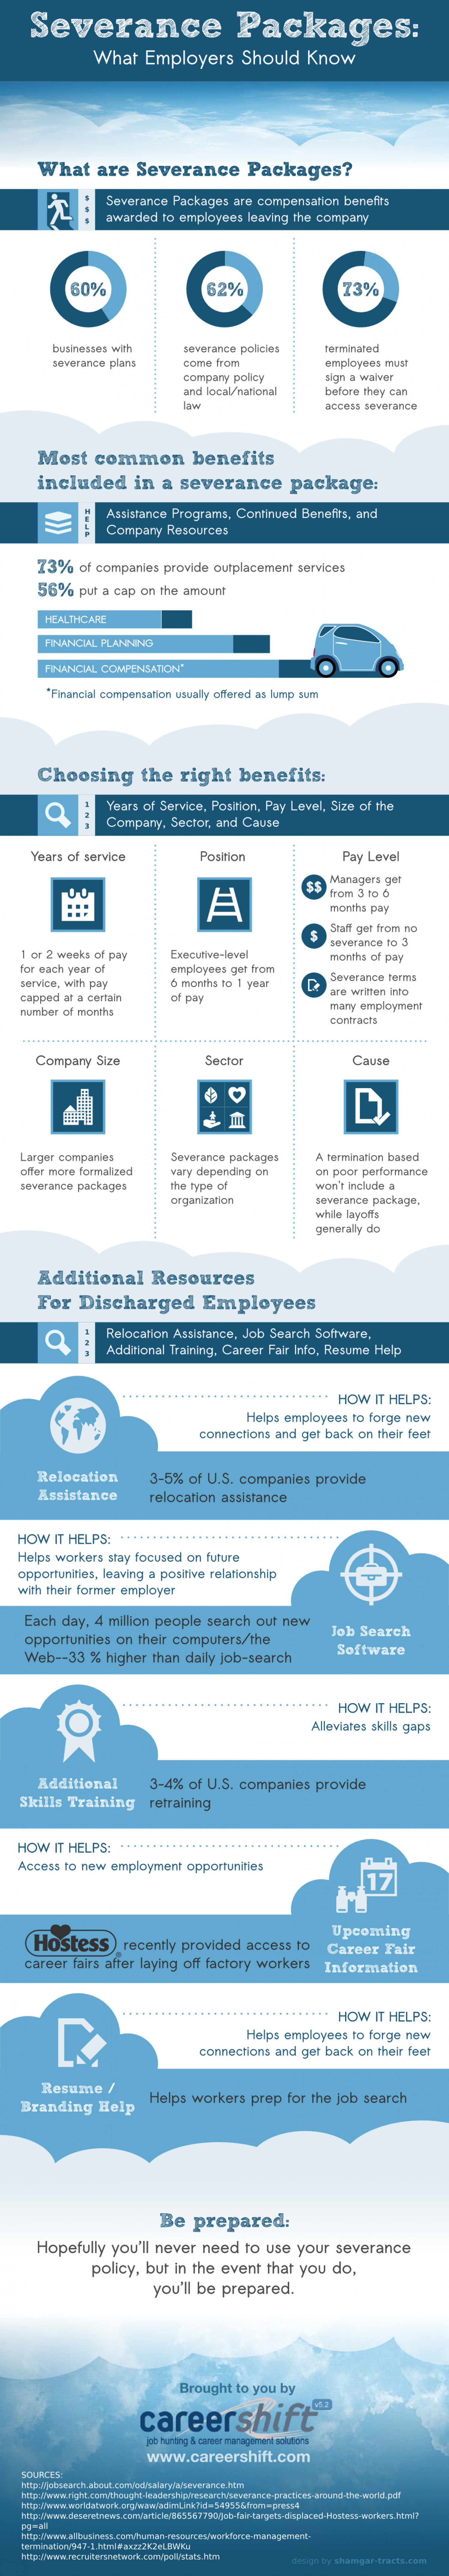 Severance Packages: What Employers Should Know Infographic